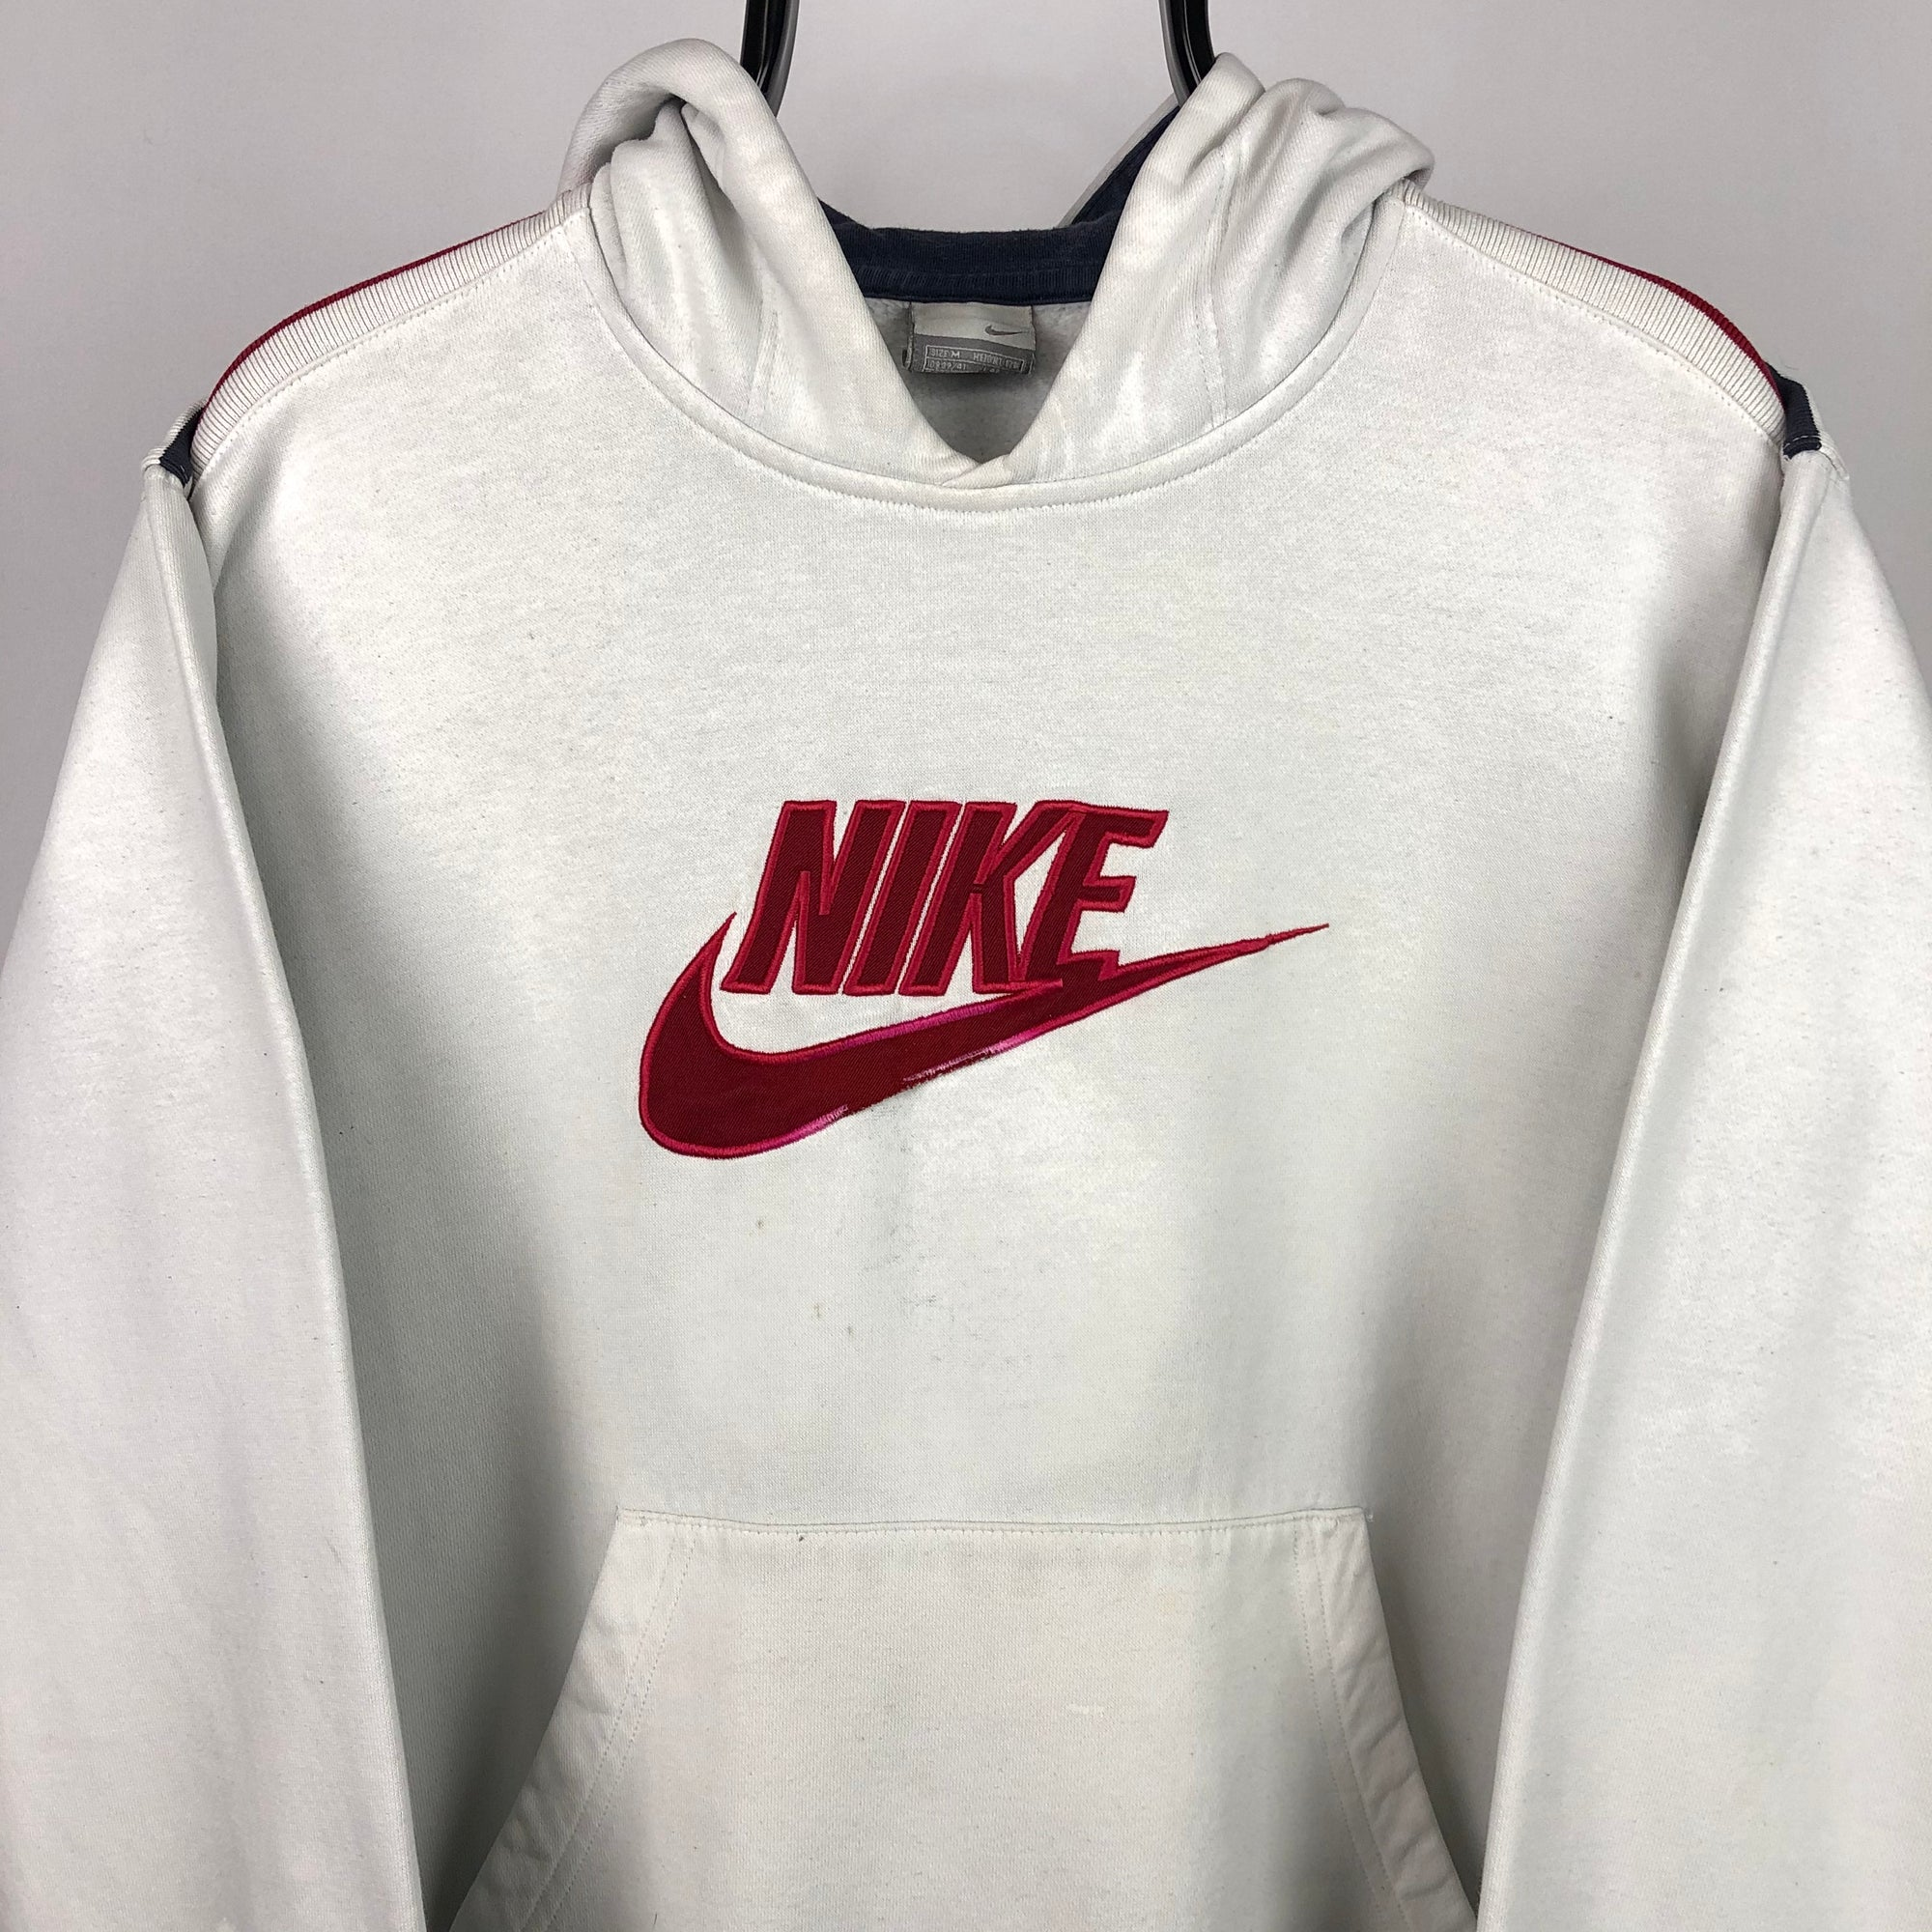 Vintage Nike Spellout Hoodie in White/Red - Men's Medium/Women's Large